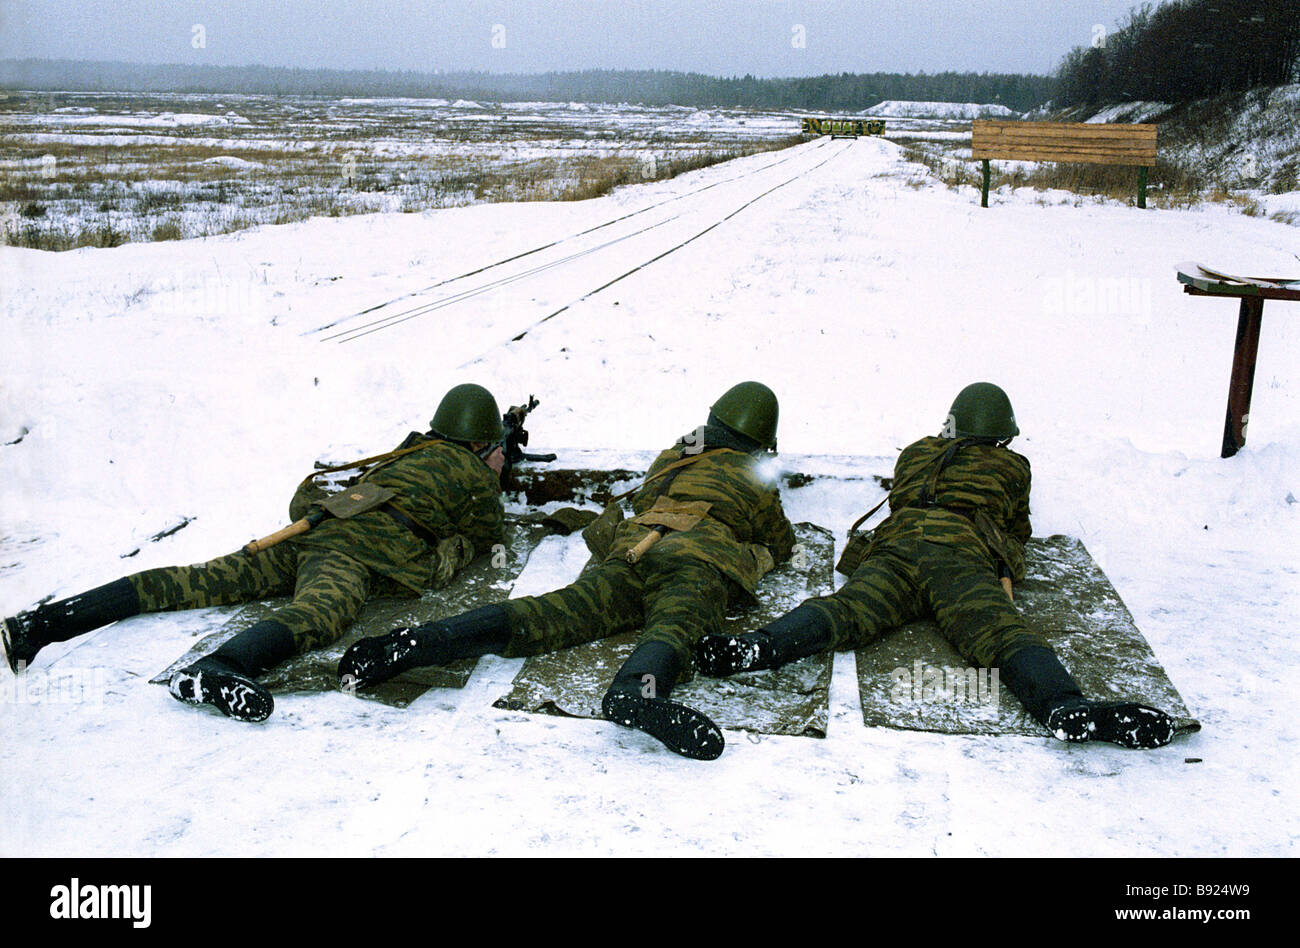 Soldiers of the Taman Motorized Rifle Division shoot live ammunition - Stock Image